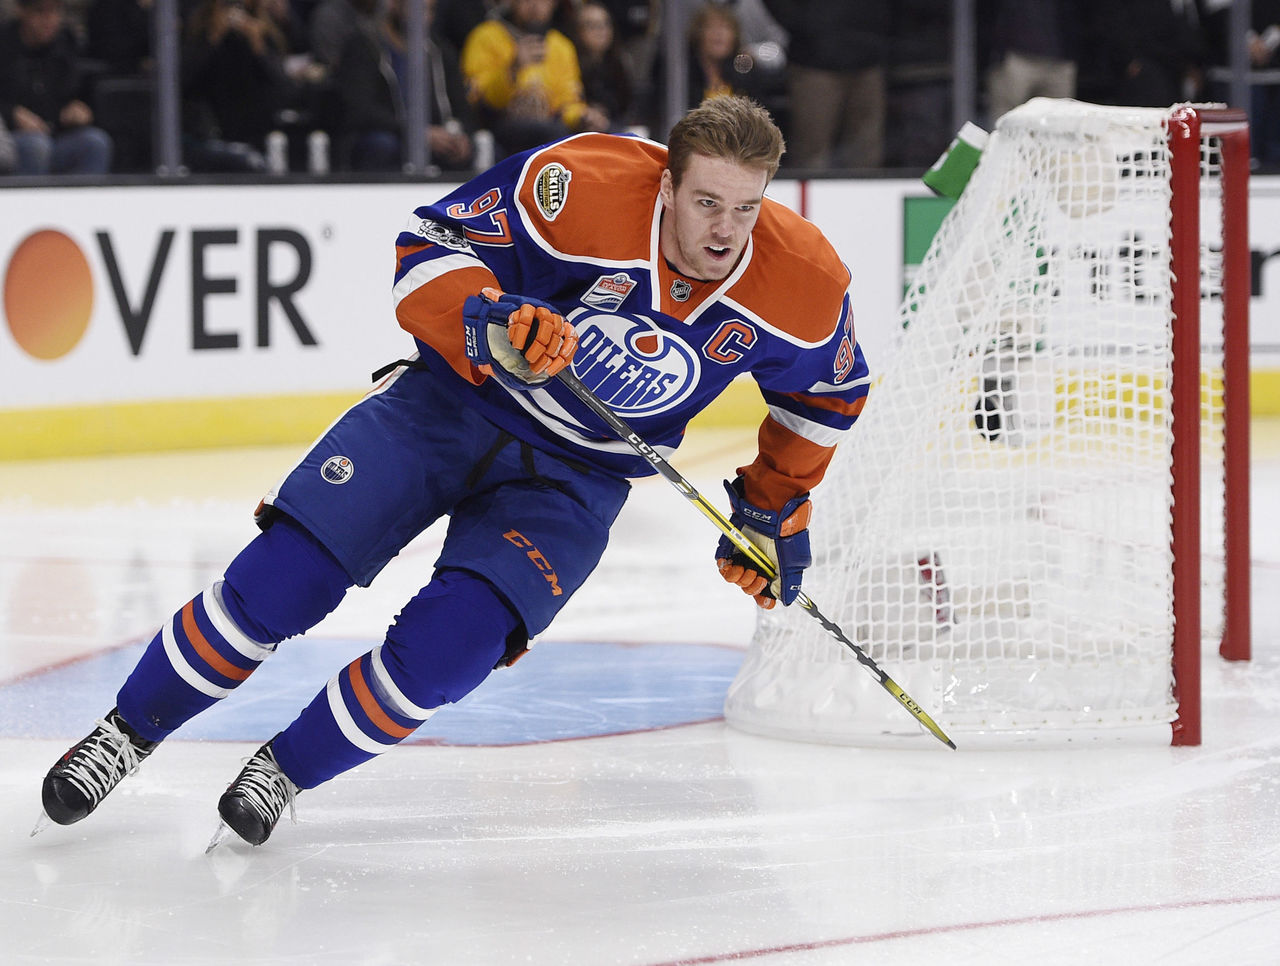 Cropped_2017-01-29t021300z_1930693851_nocid_rtrmadp_3_nhl-nhl-all-star-game-skills-competition